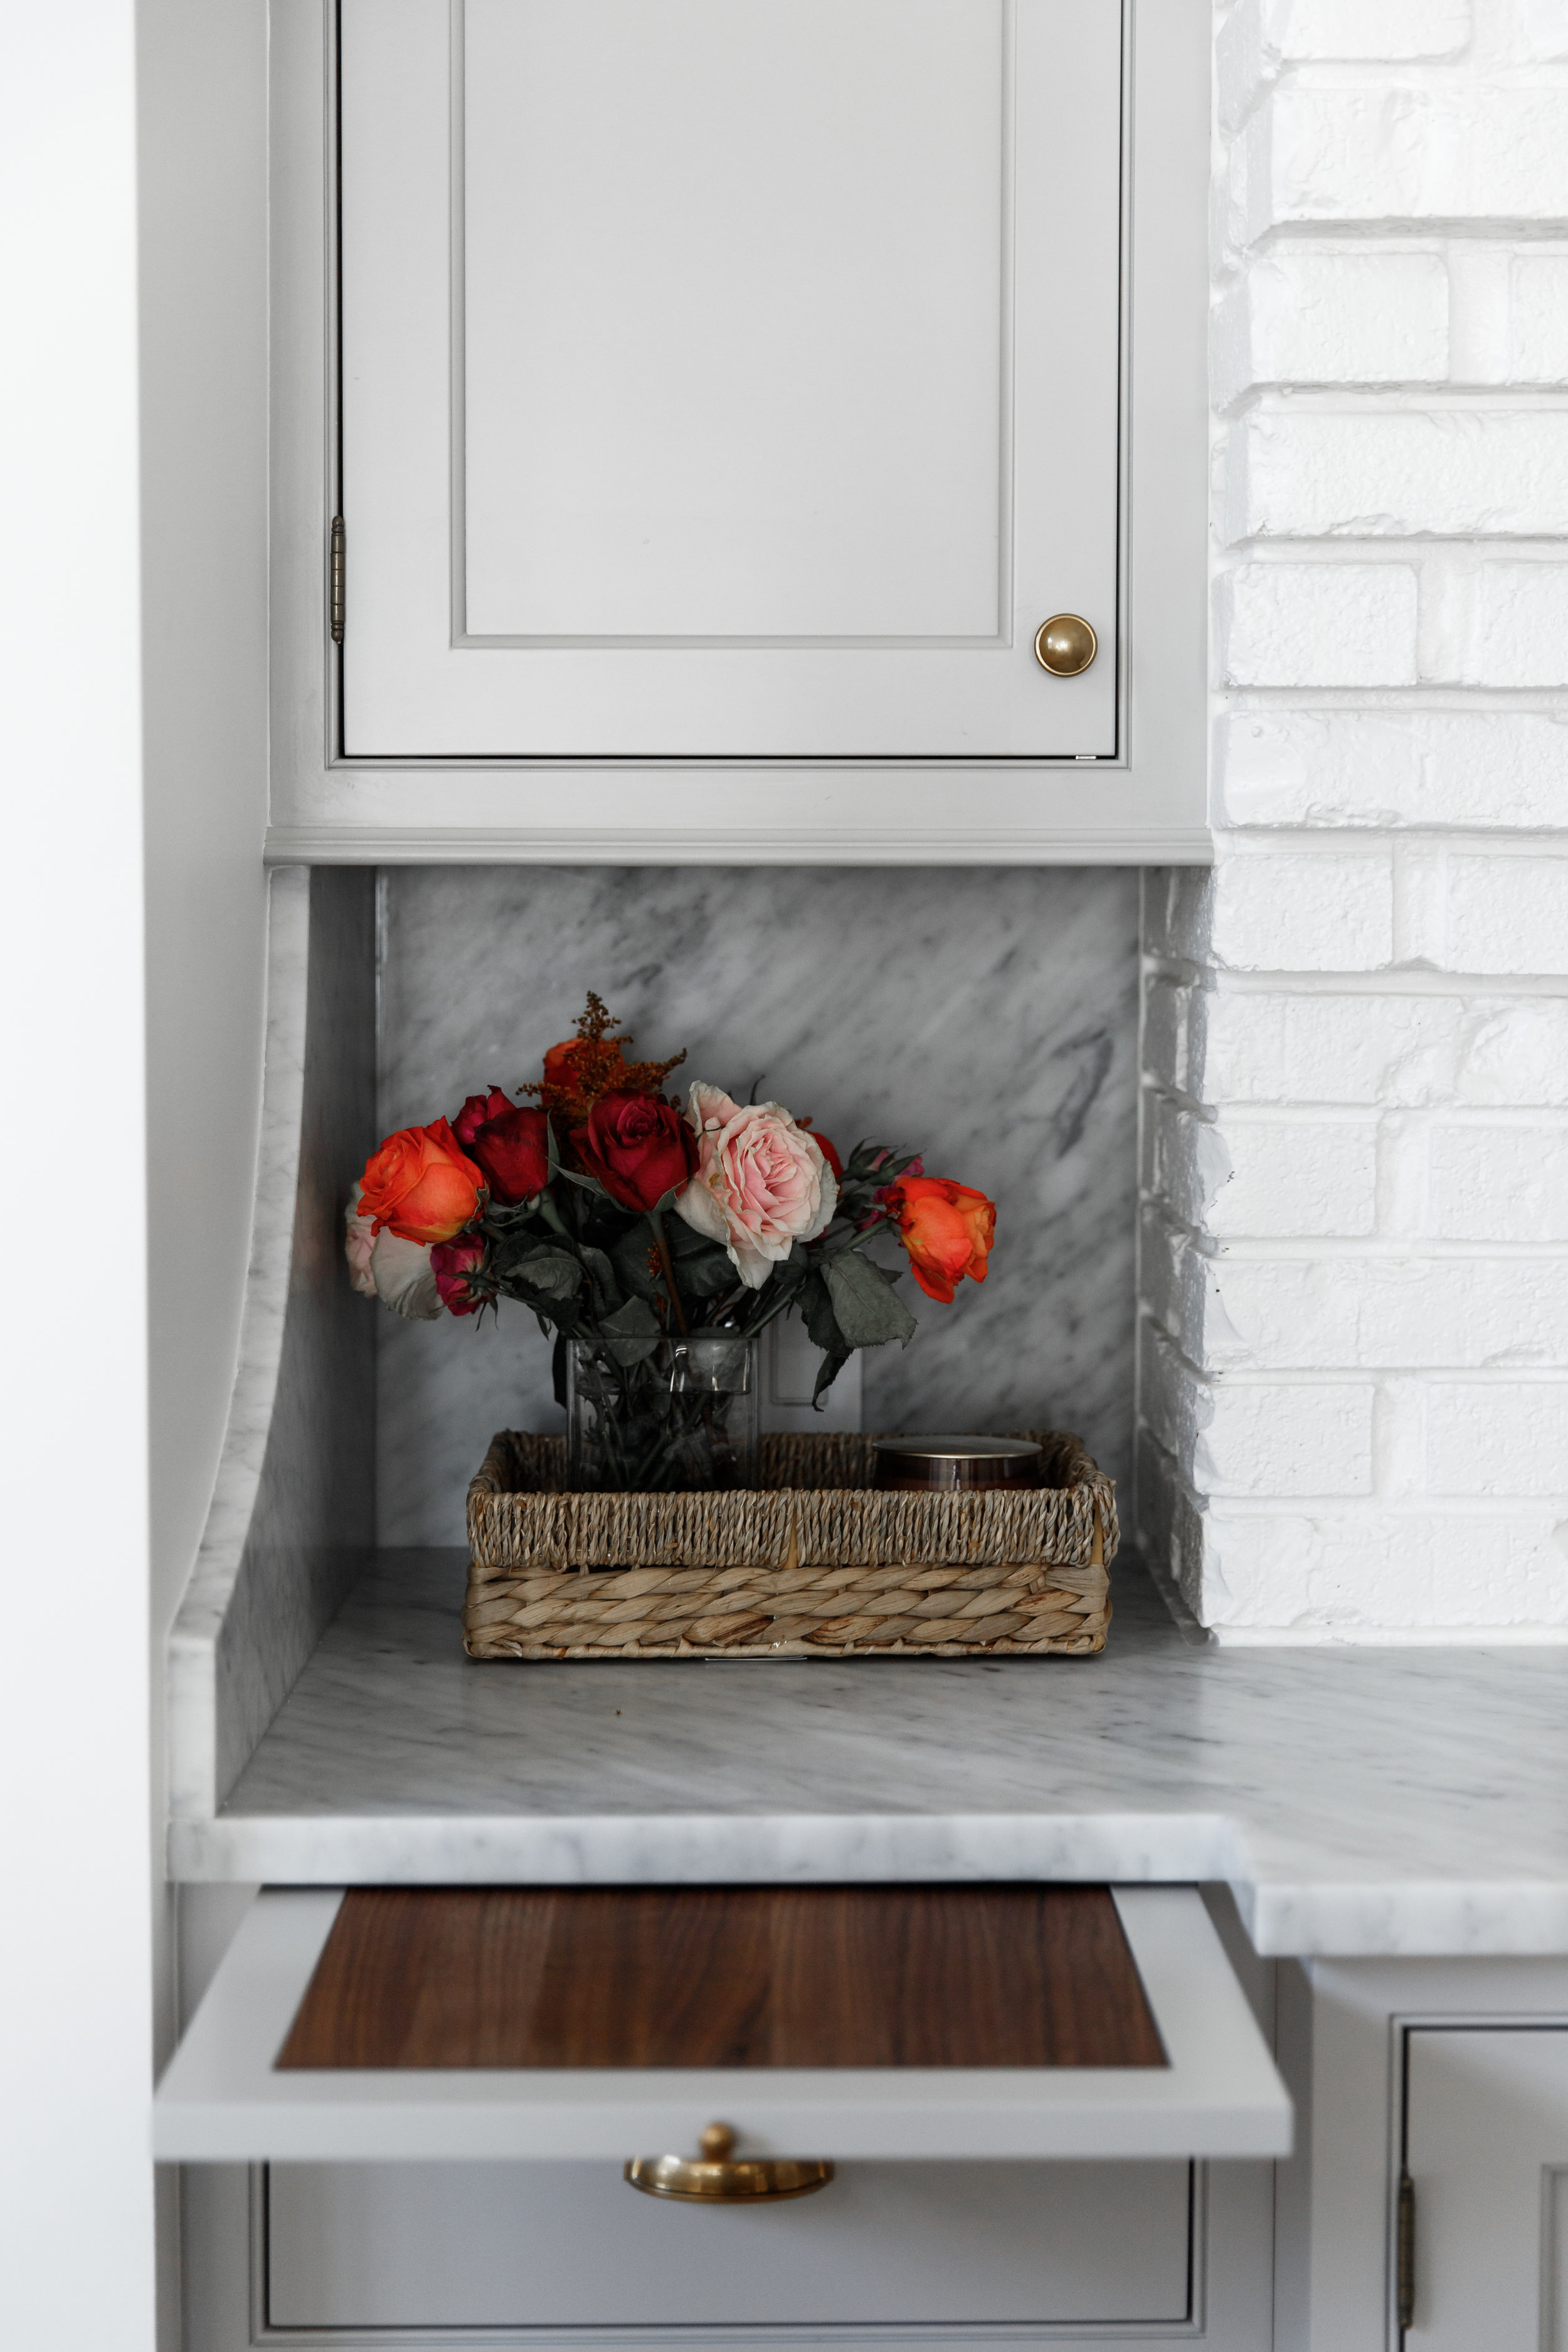 Kitchen cabinets with cutting board and marble backsplash